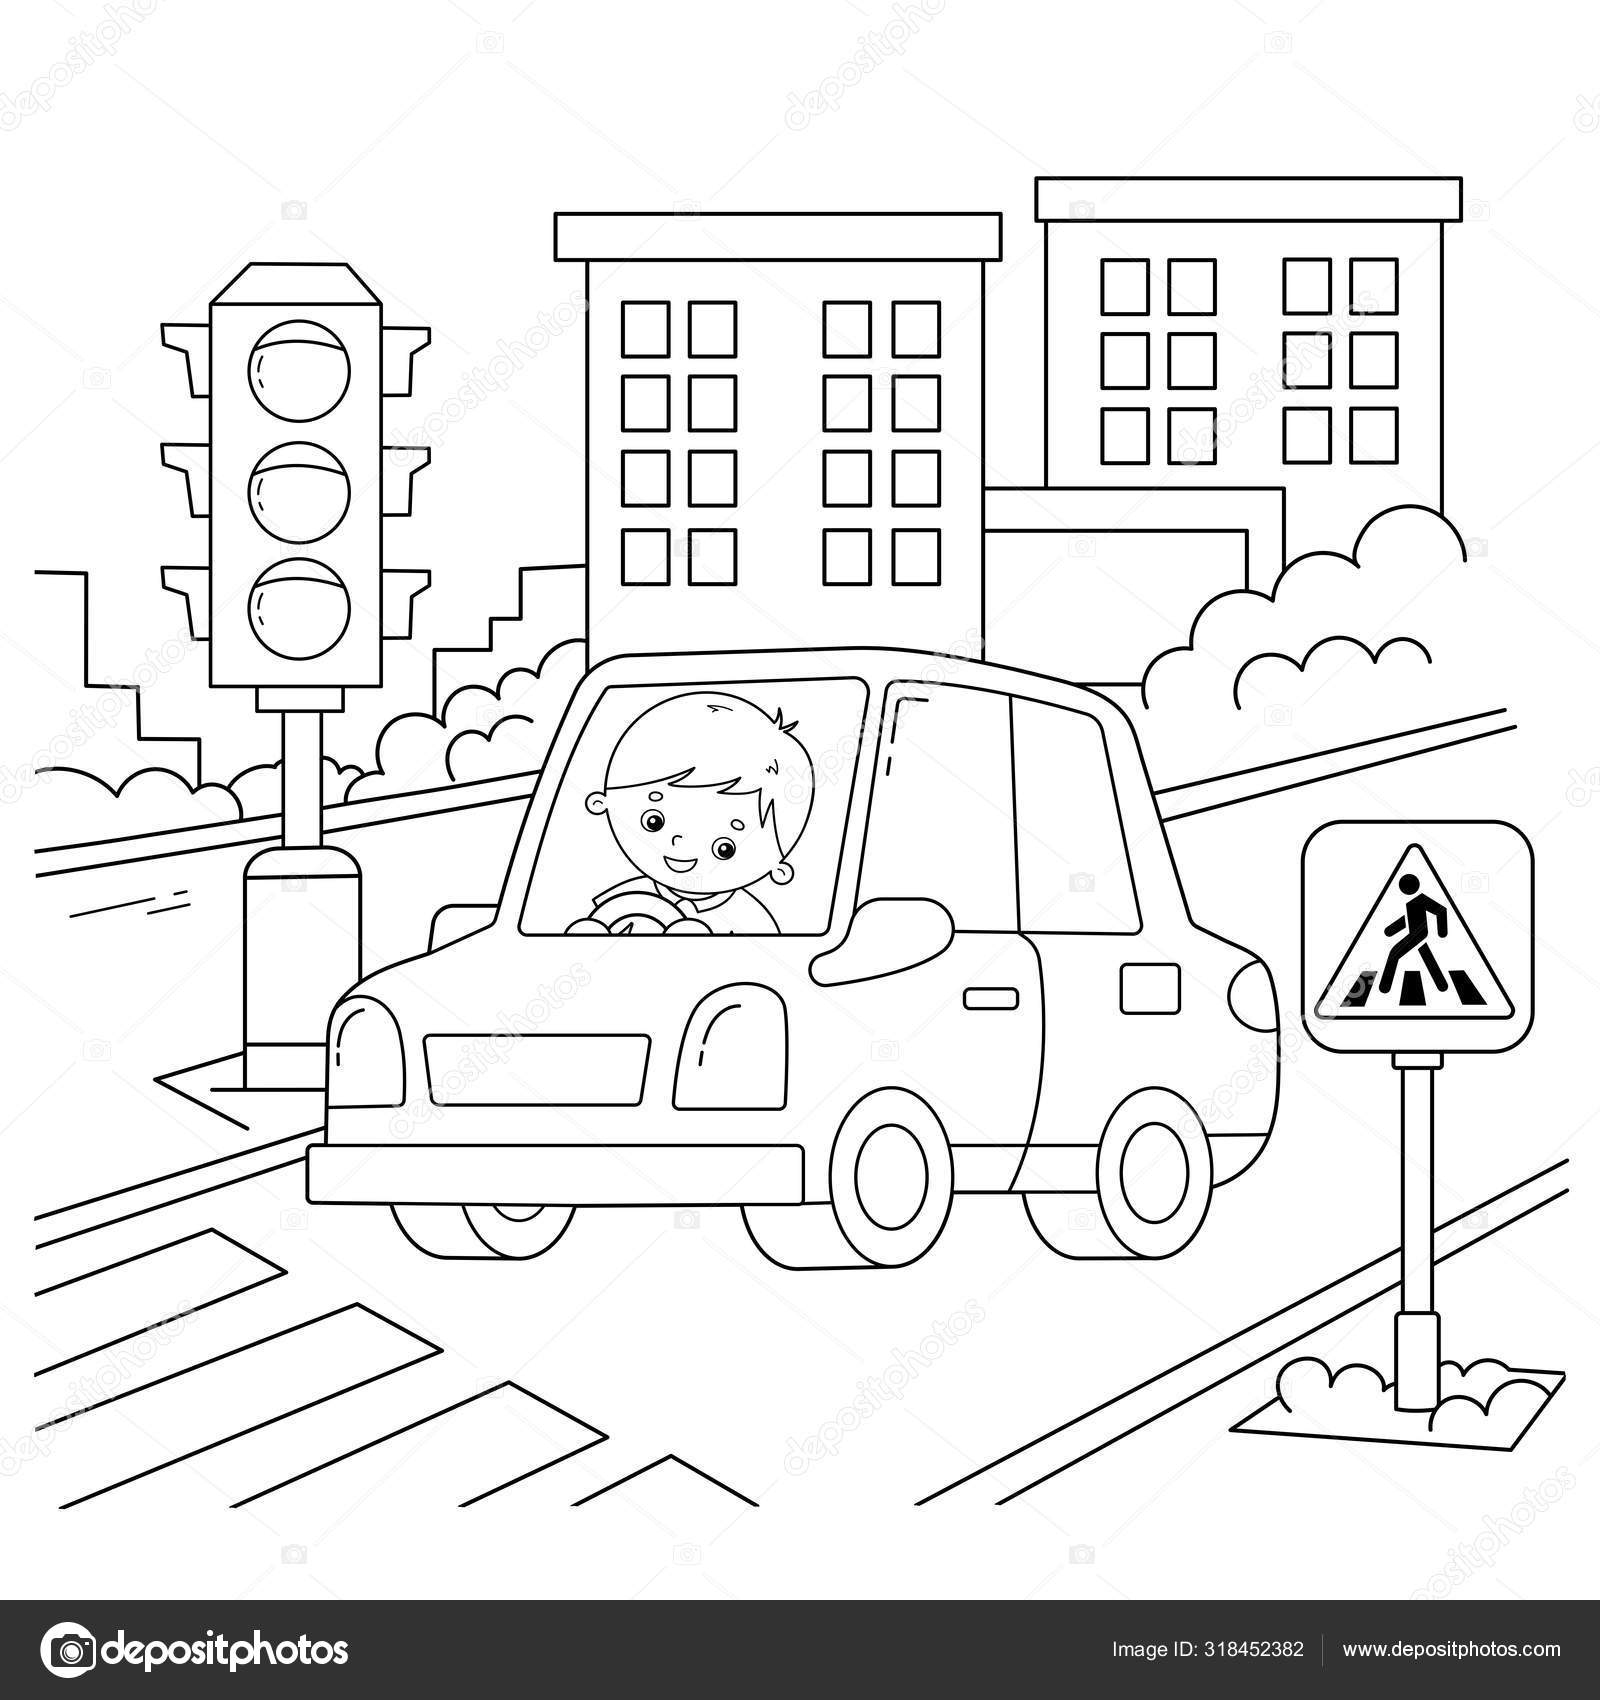 Coloring Page Outline Of Cartoon Car With Driver On Road